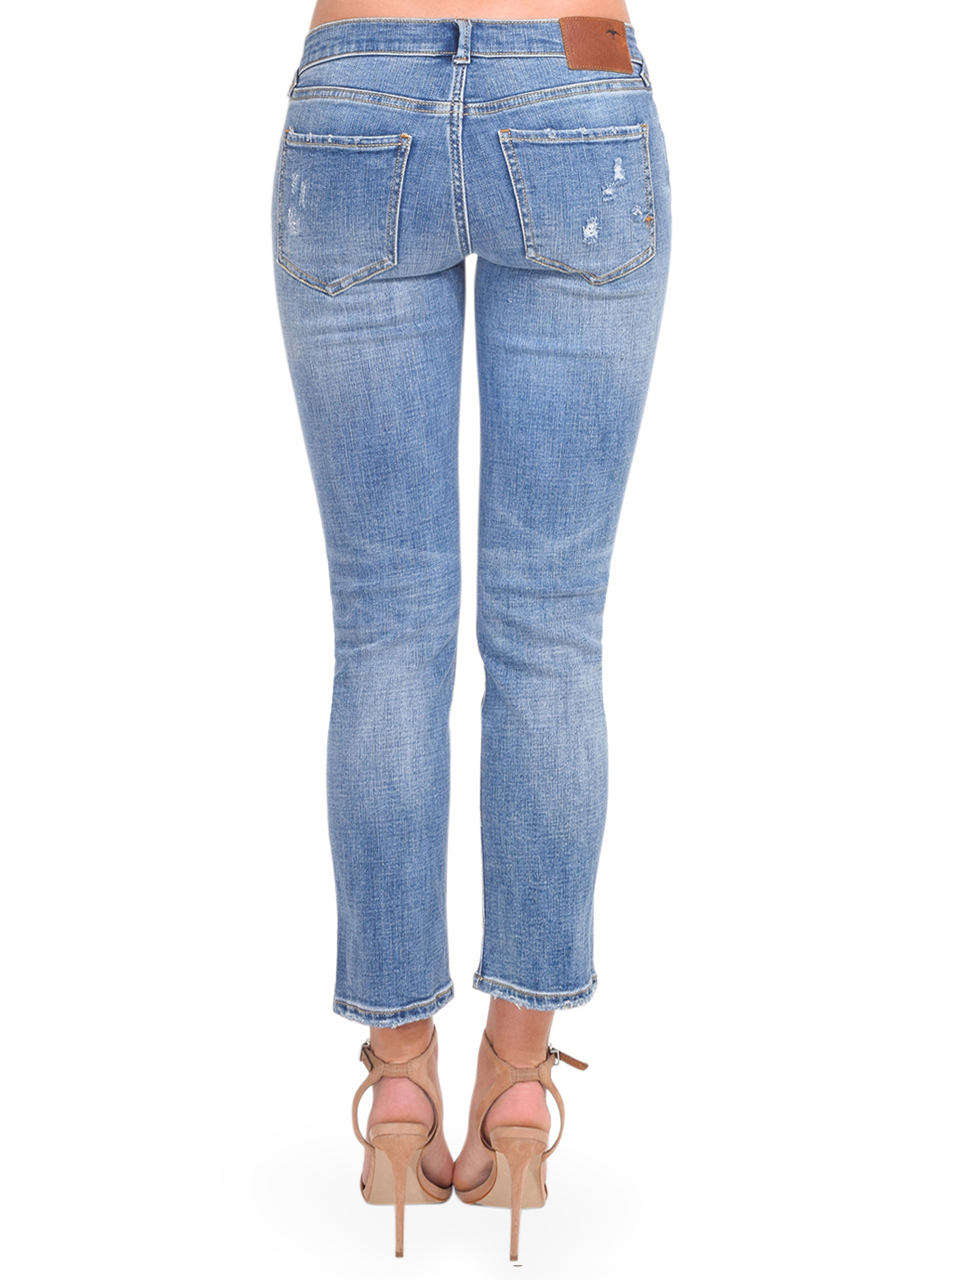 SERRA By Joie Rucker Smashing Low Rise Jeans in Rockpoint Blue Back View